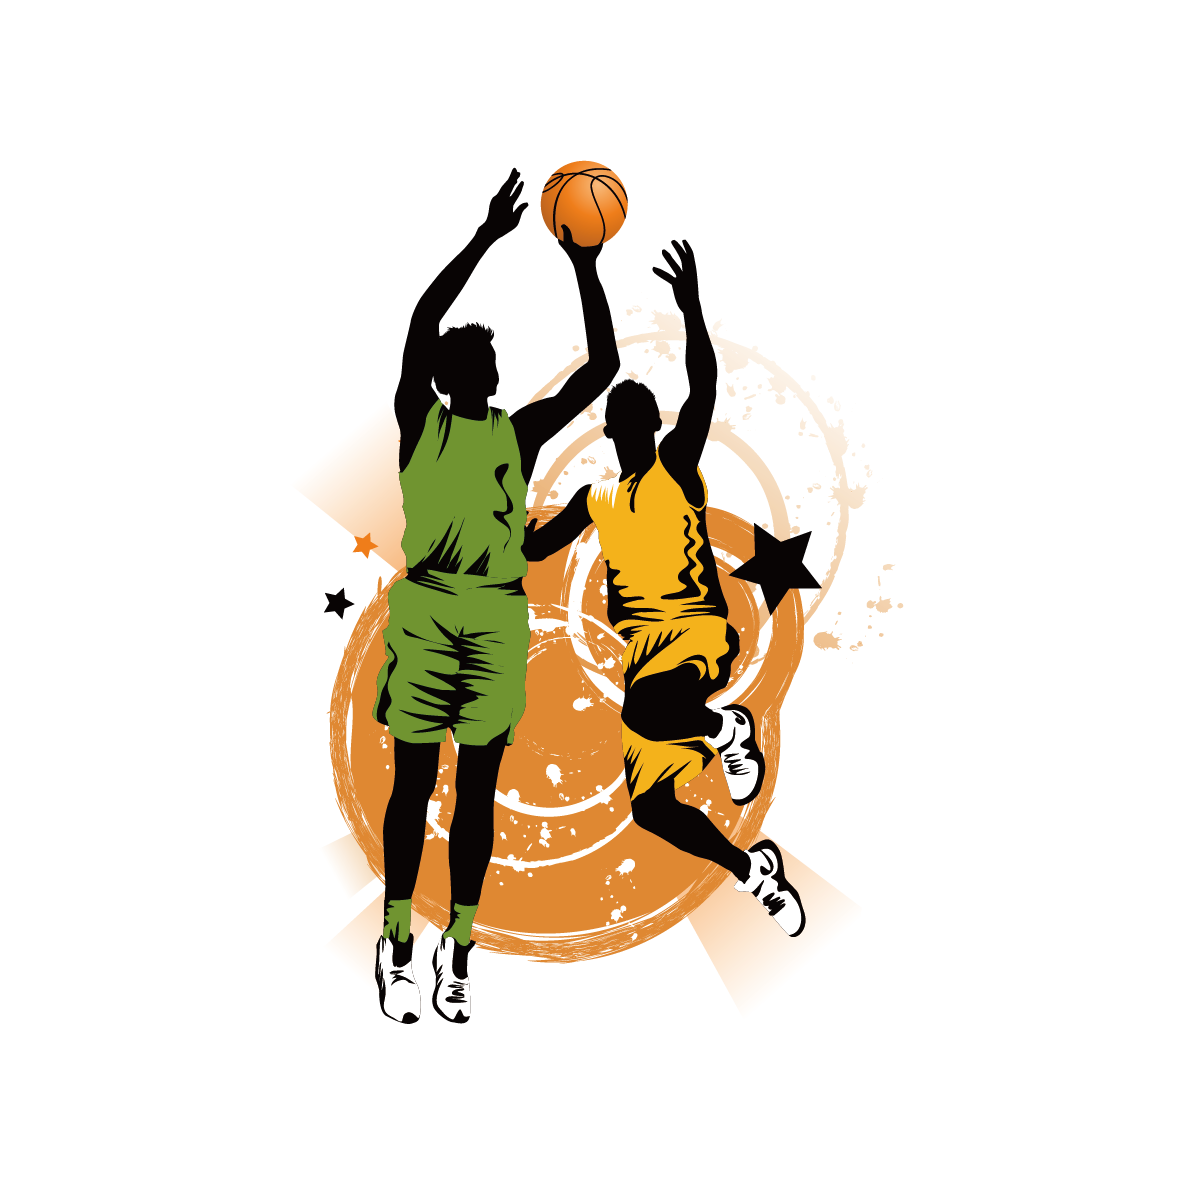 Cartoon women basketball player clipart clip library stock Slam Dunk Clipart at GetDrawings.com | Free for personal use Slam ... clip library stock